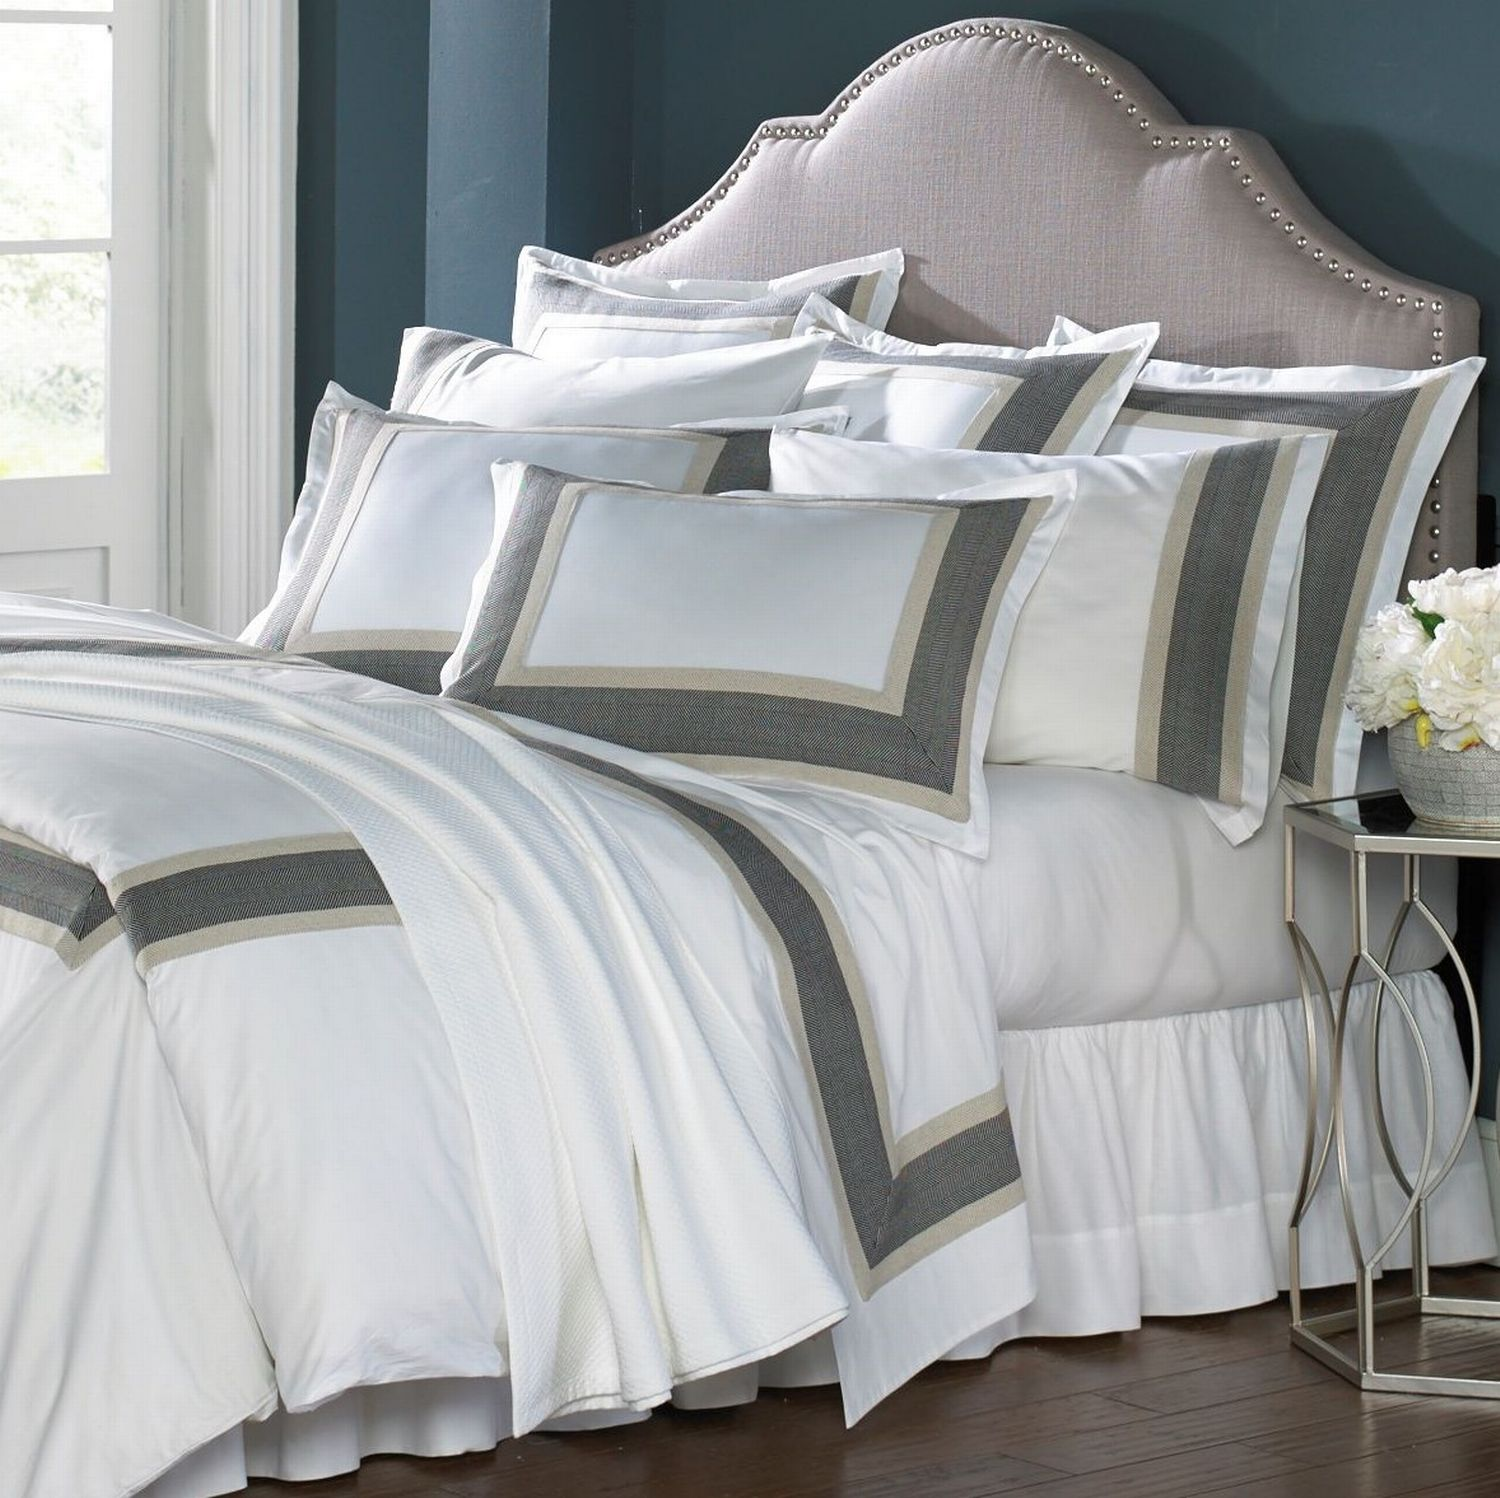 Traditions Linens Bedding Vienna Collection